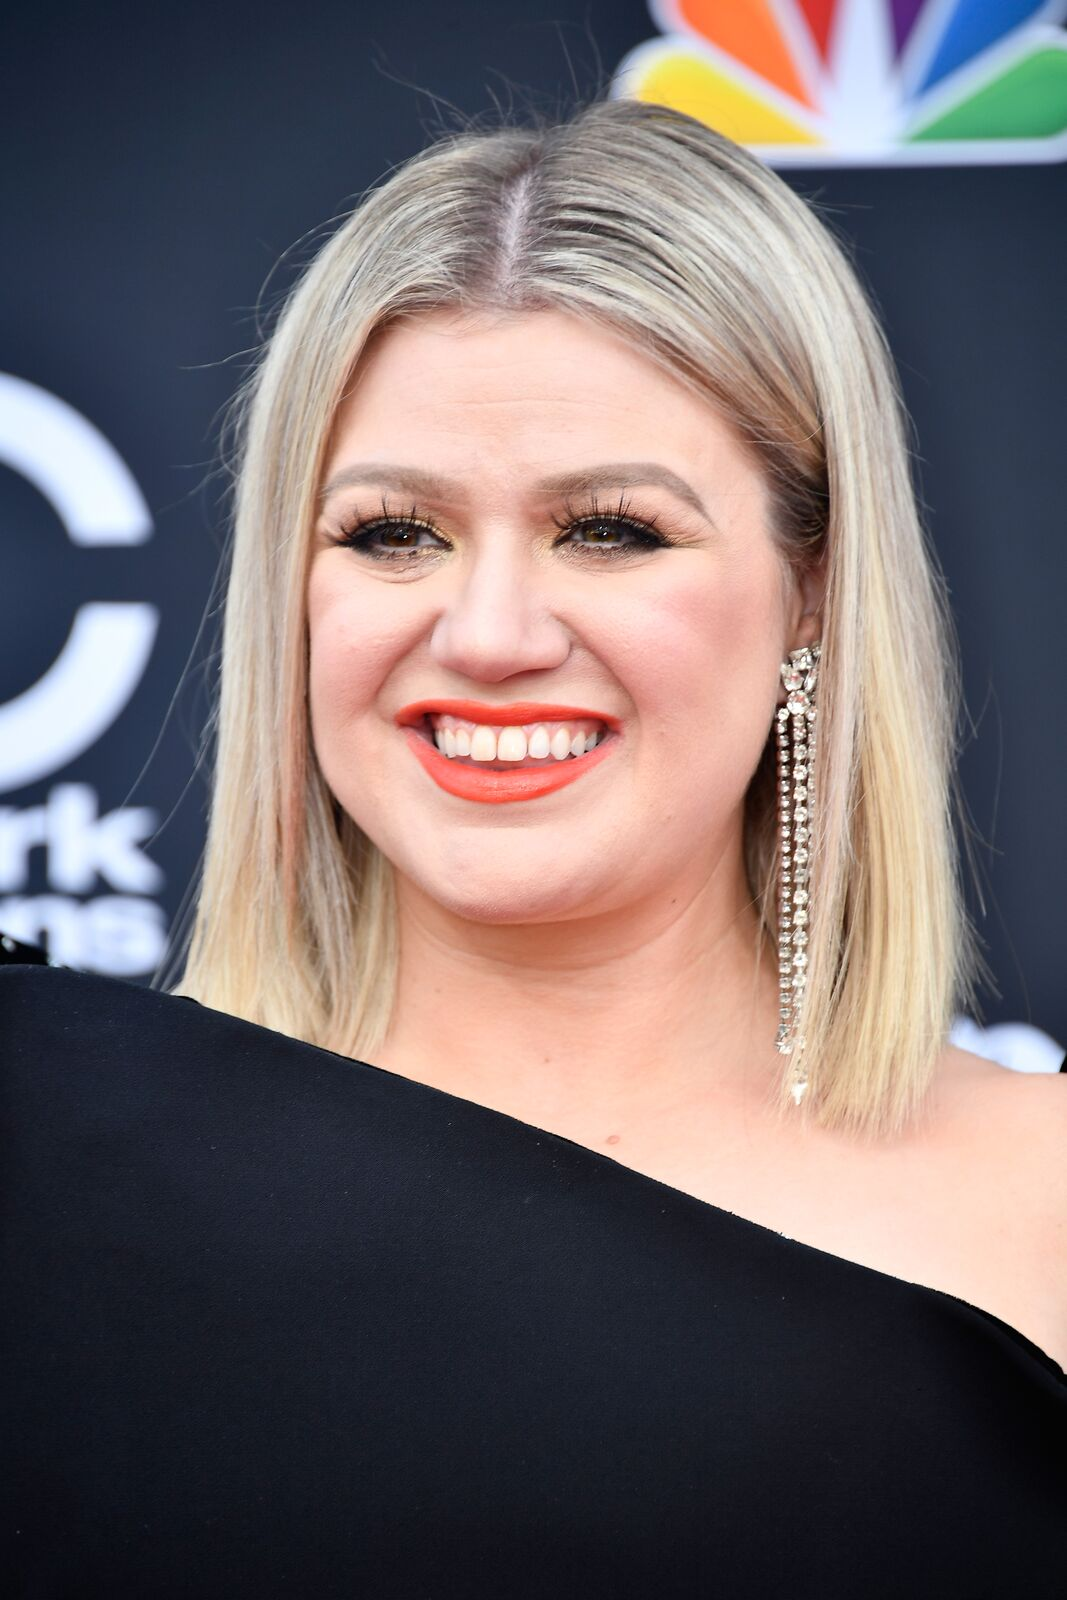 Host Kelly Clarkson attends the 2018 Billboard Music Awards at MGM Grand Garden Arena on May 20, 2018 in Las Vegas, Nevada | Photo: Getty Images